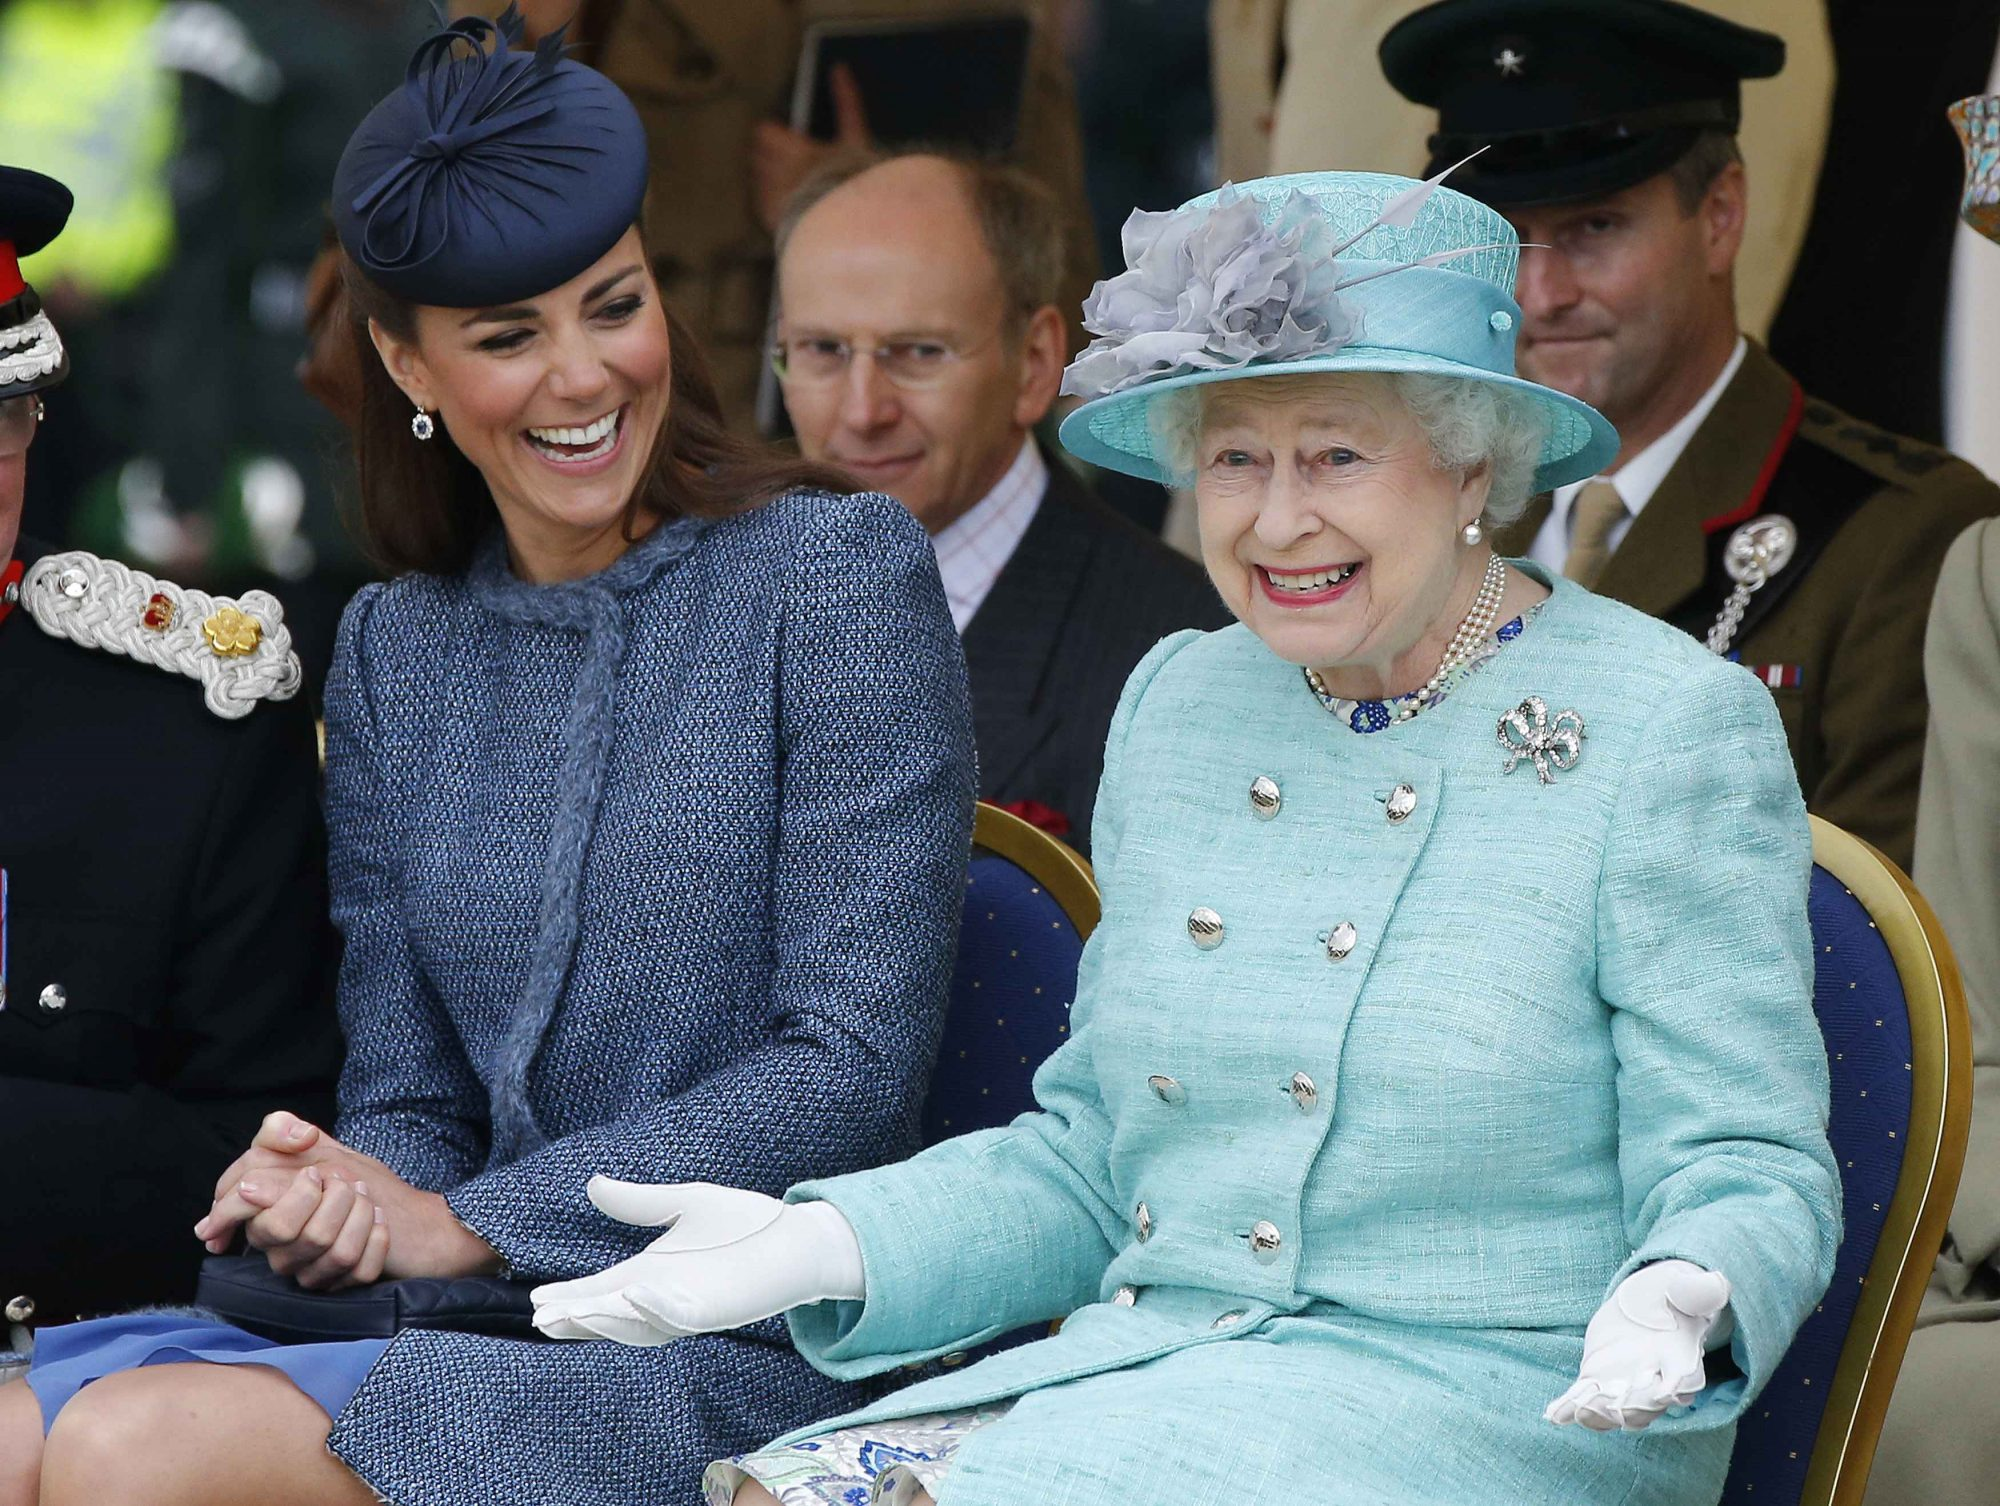 Homemade Gift Kate Middleton Gave Queen for Christmas